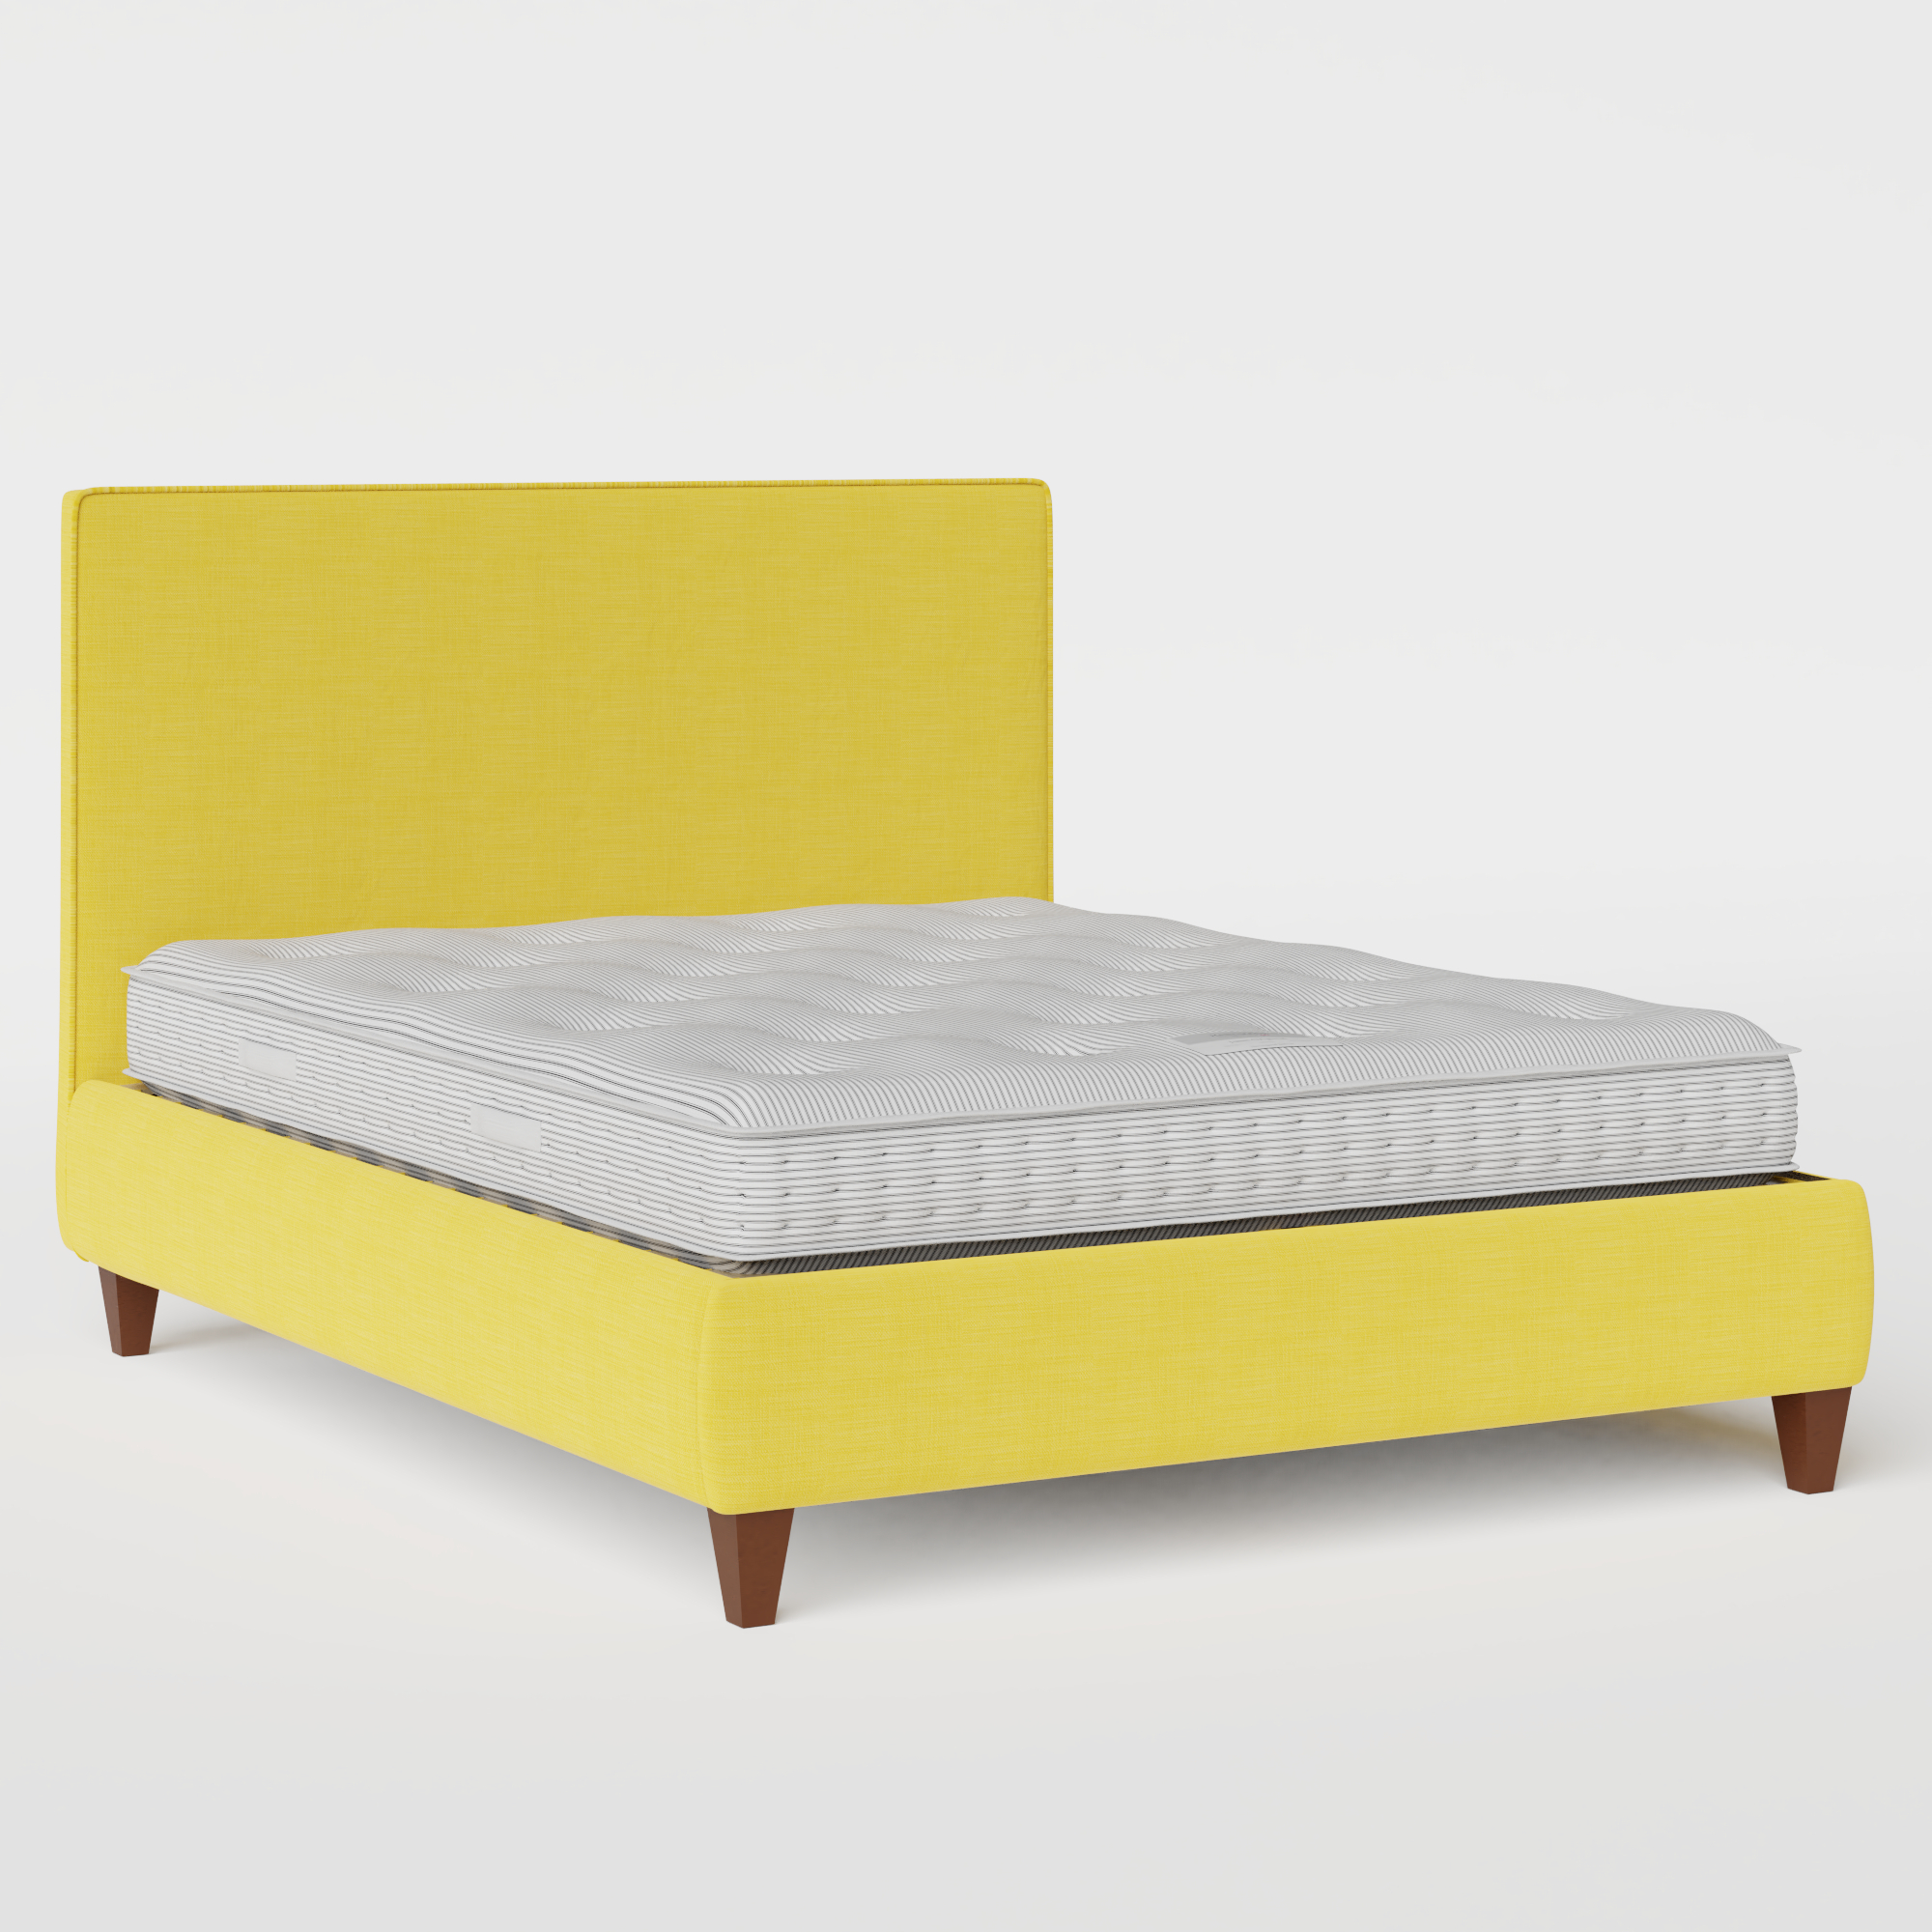 Yushan with Piping upholstered bed in sunflower fabric